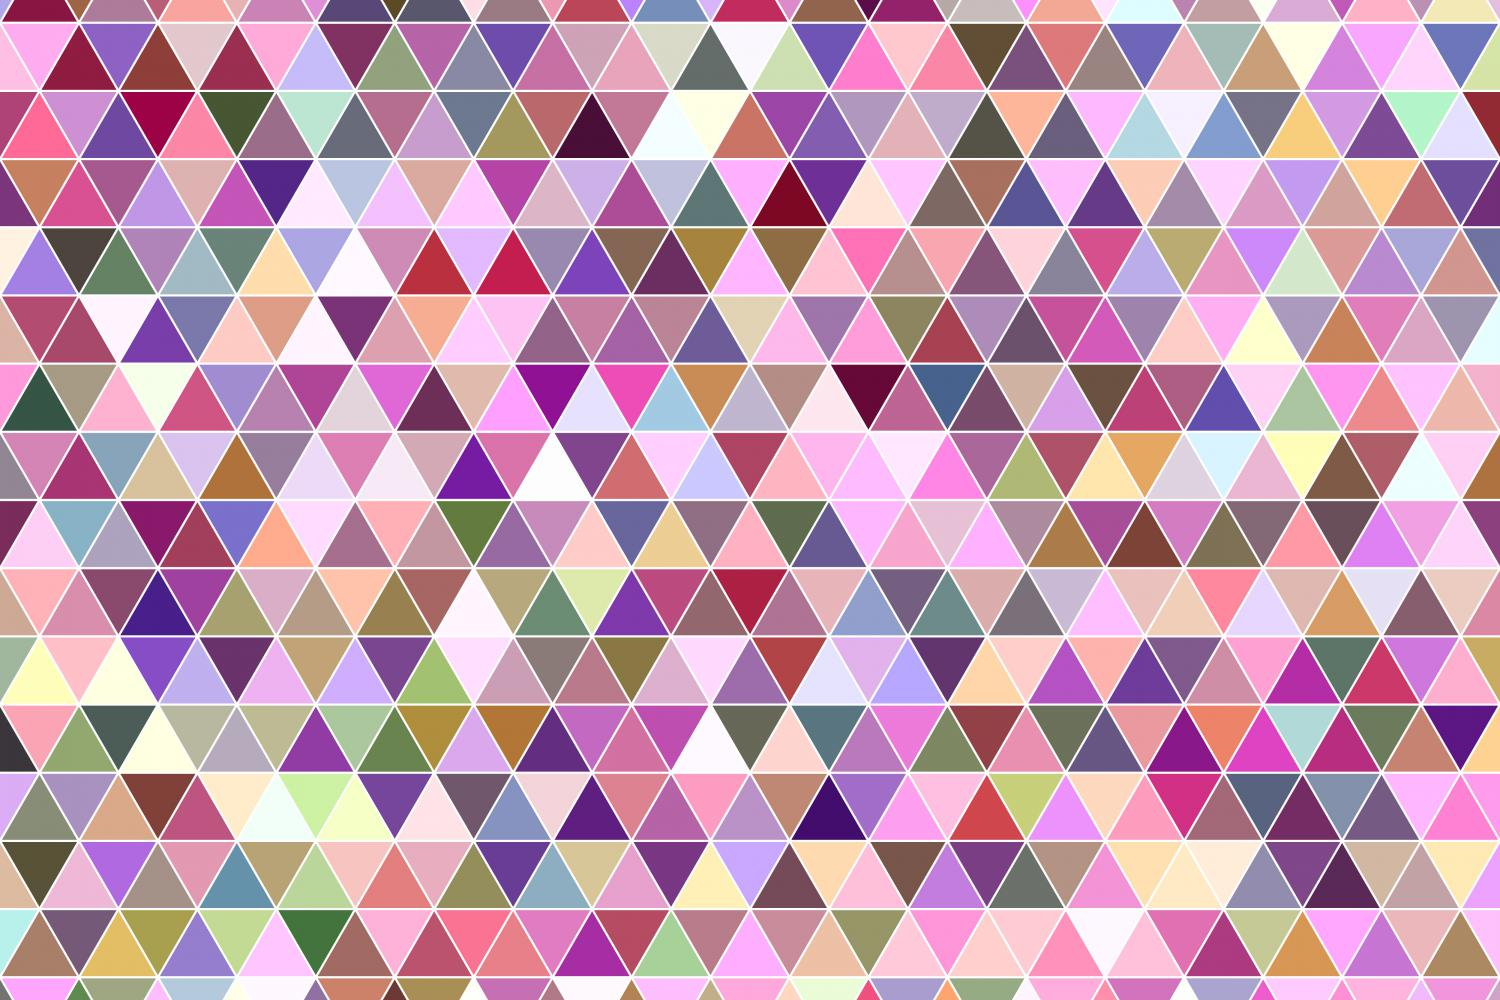 Download Free Colorful Triangle Polygon Graphic By Davidzydd Creative Fabrica for Cricut Explore, Silhouette and other cutting machines.